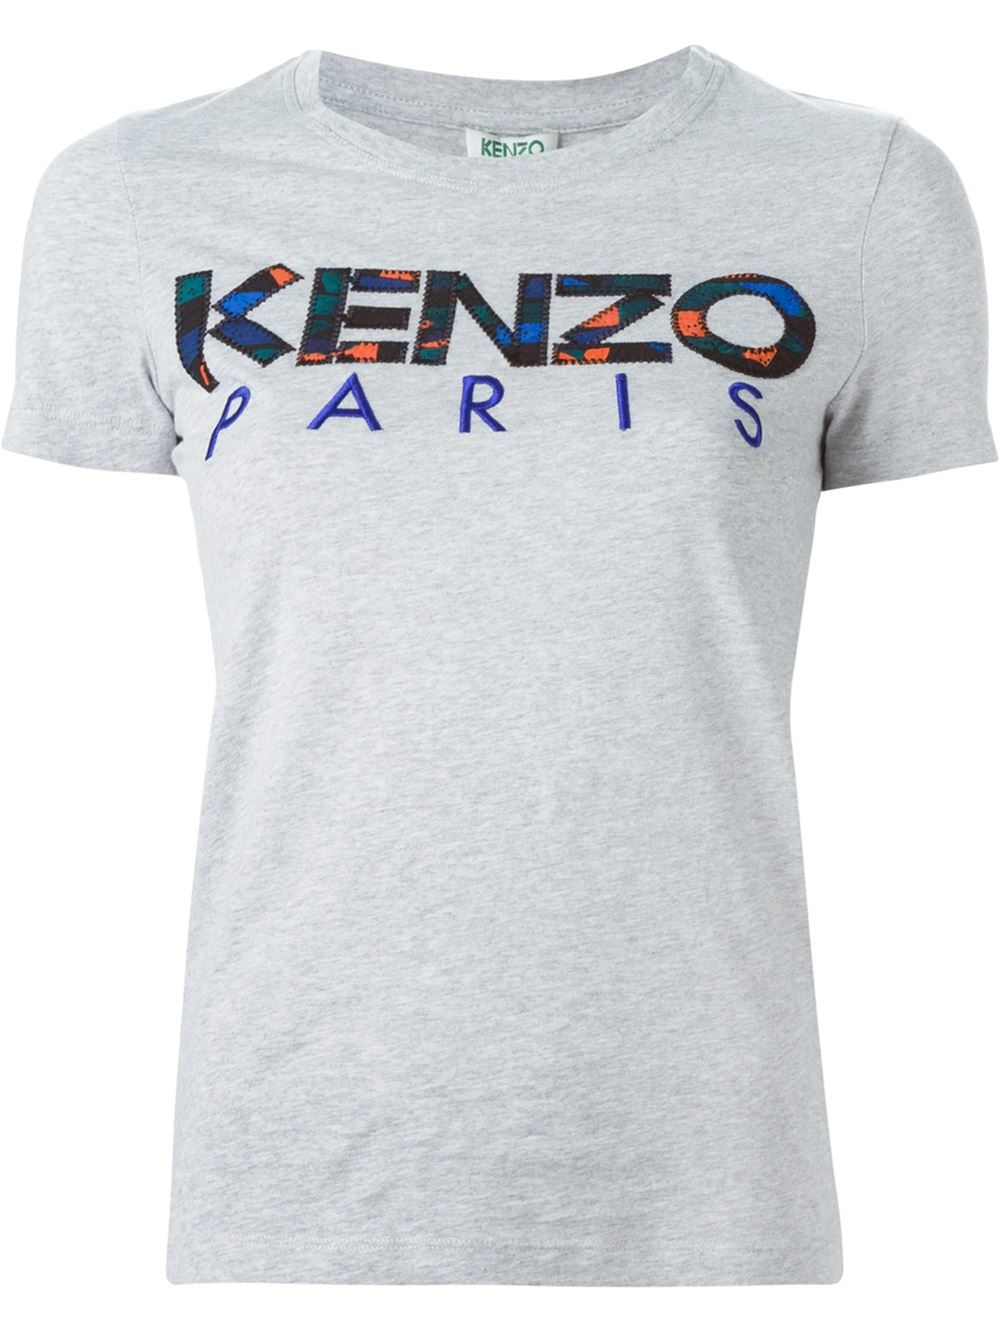 kenzo paris t shirt in gray lyst. Black Bedroom Furniture Sets. Home Design Ideas